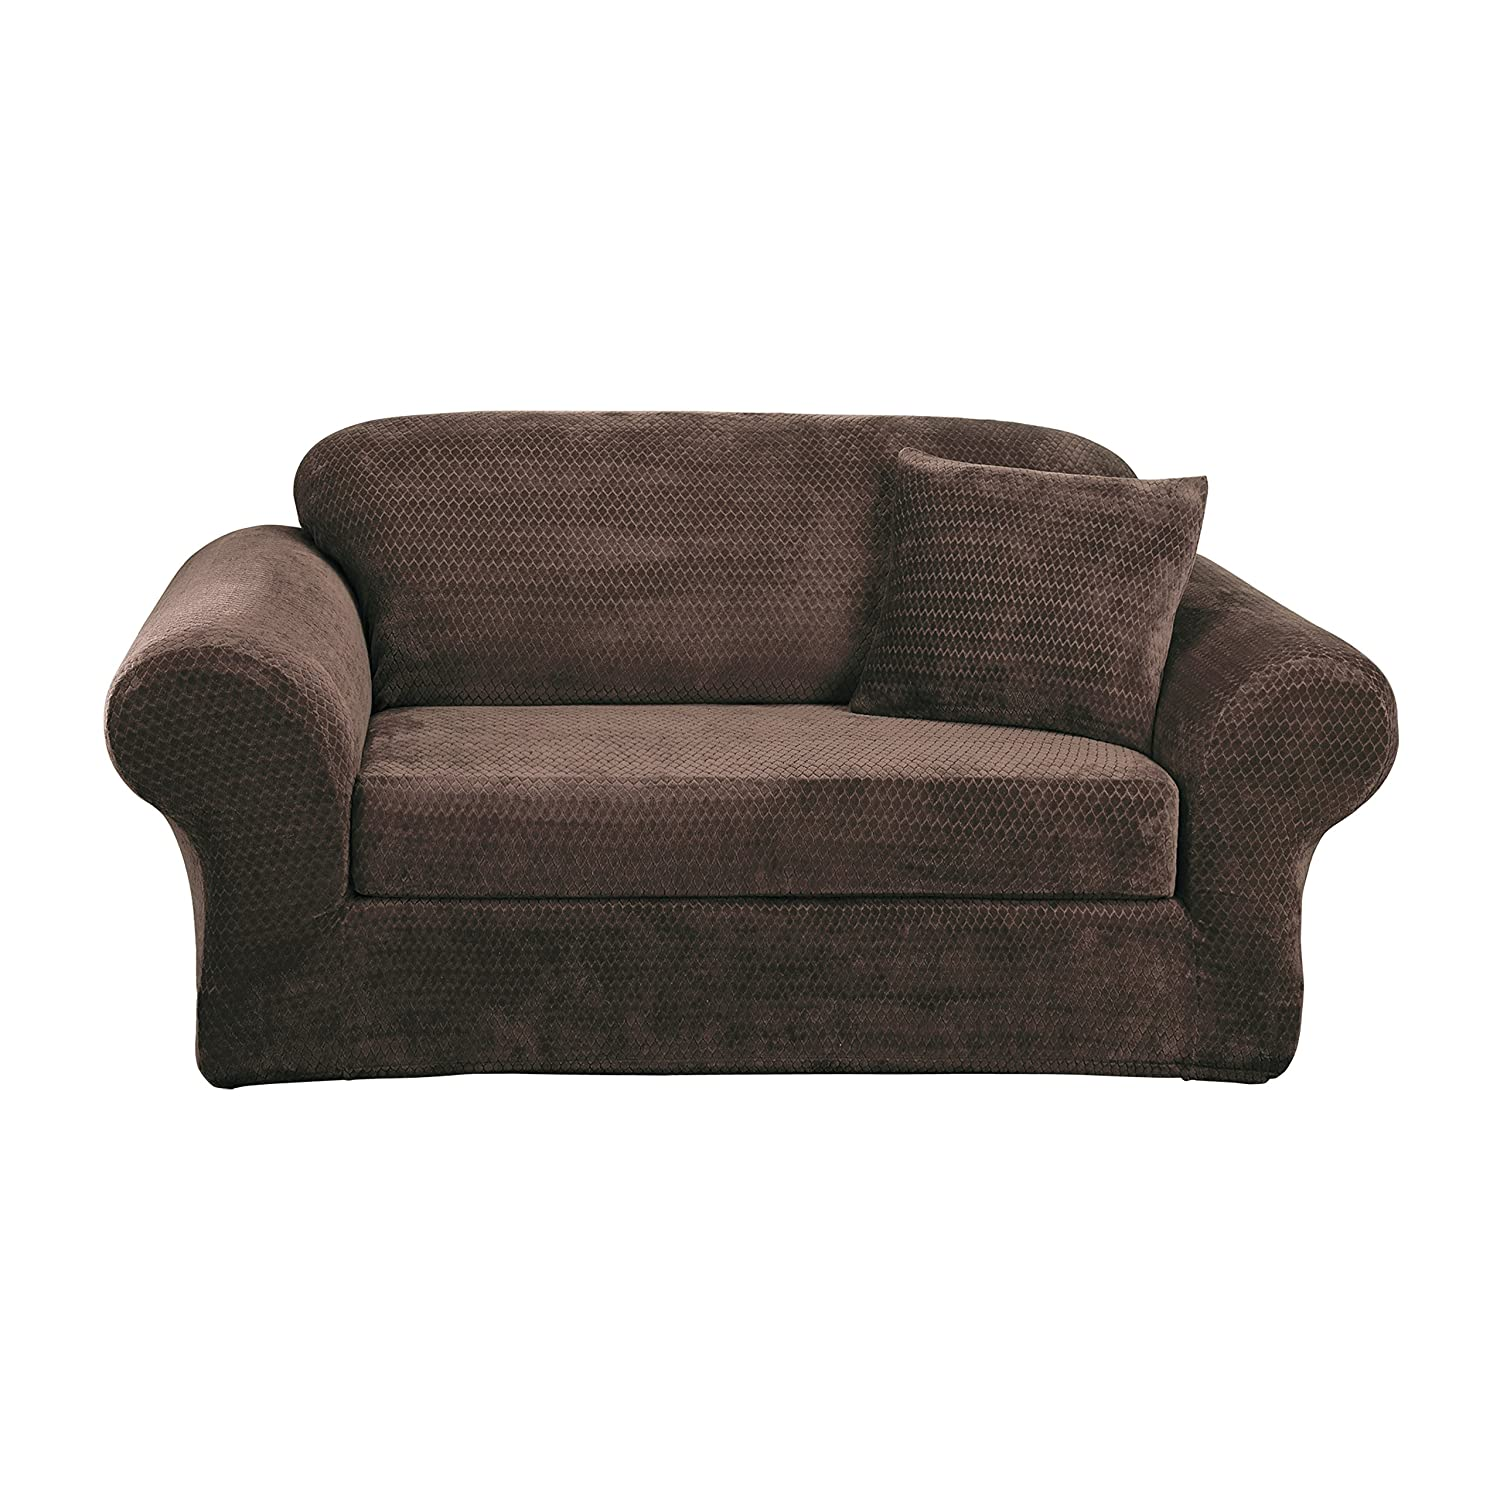 Amazon Sure Fit Stretch Royal Diamond 2 Piece Loveseat